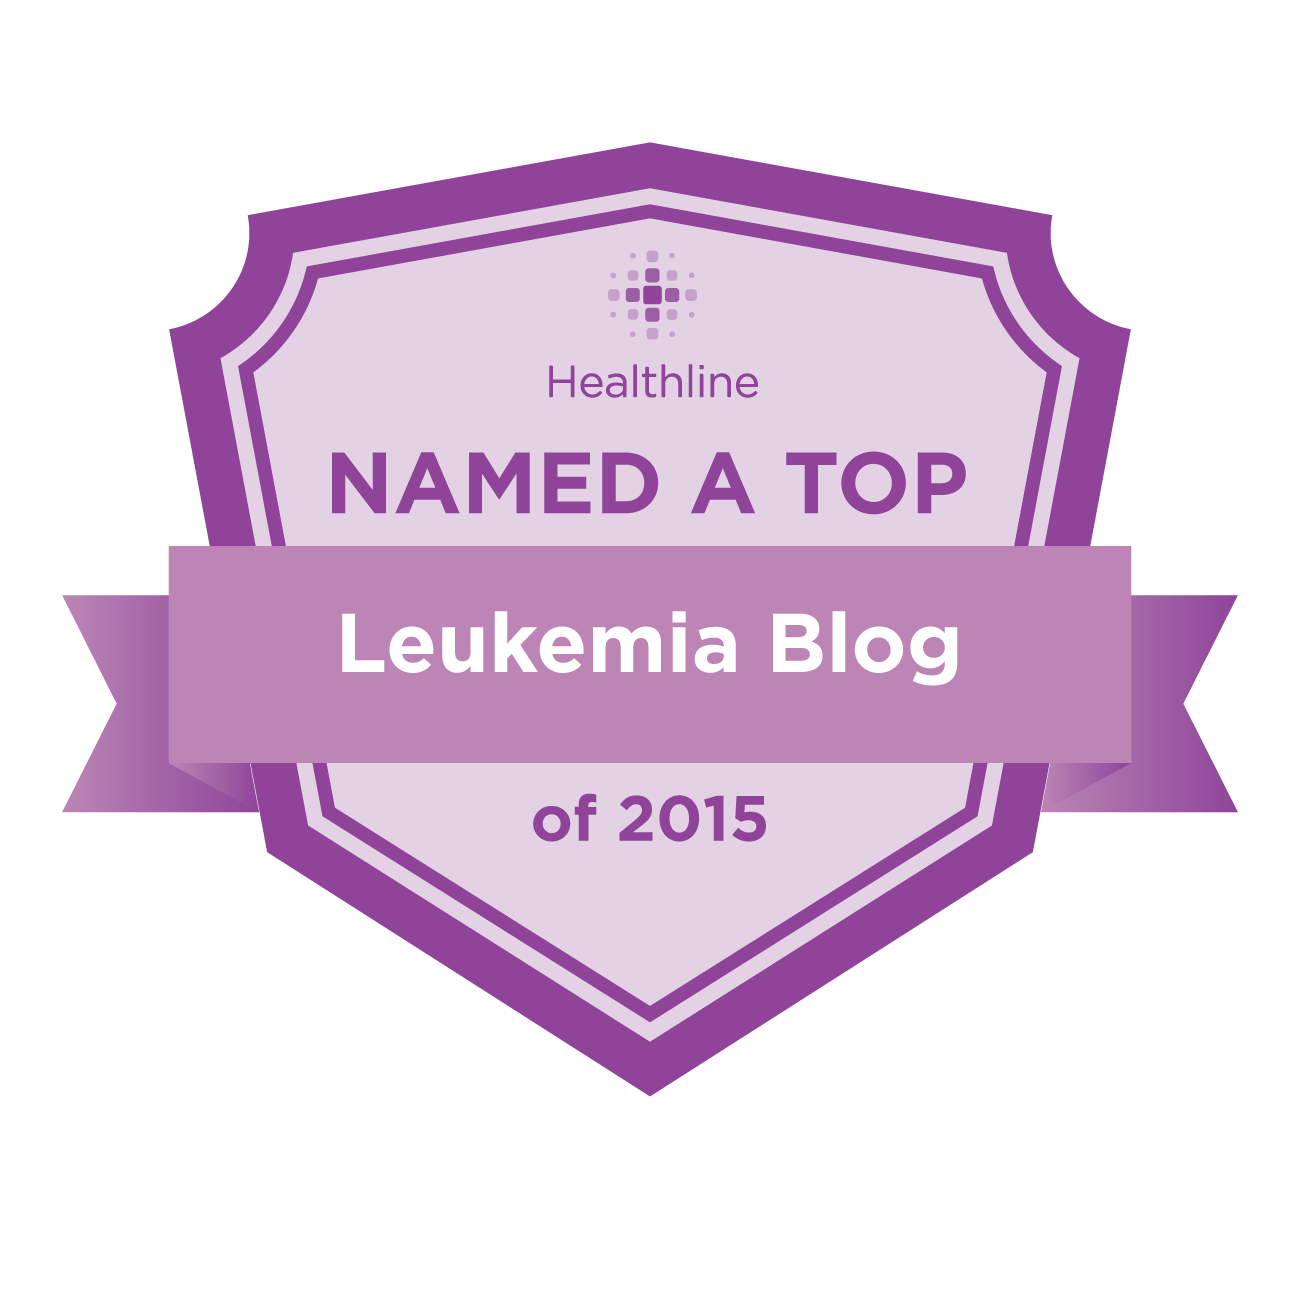 Healthline named this a top Leukemia Blog!